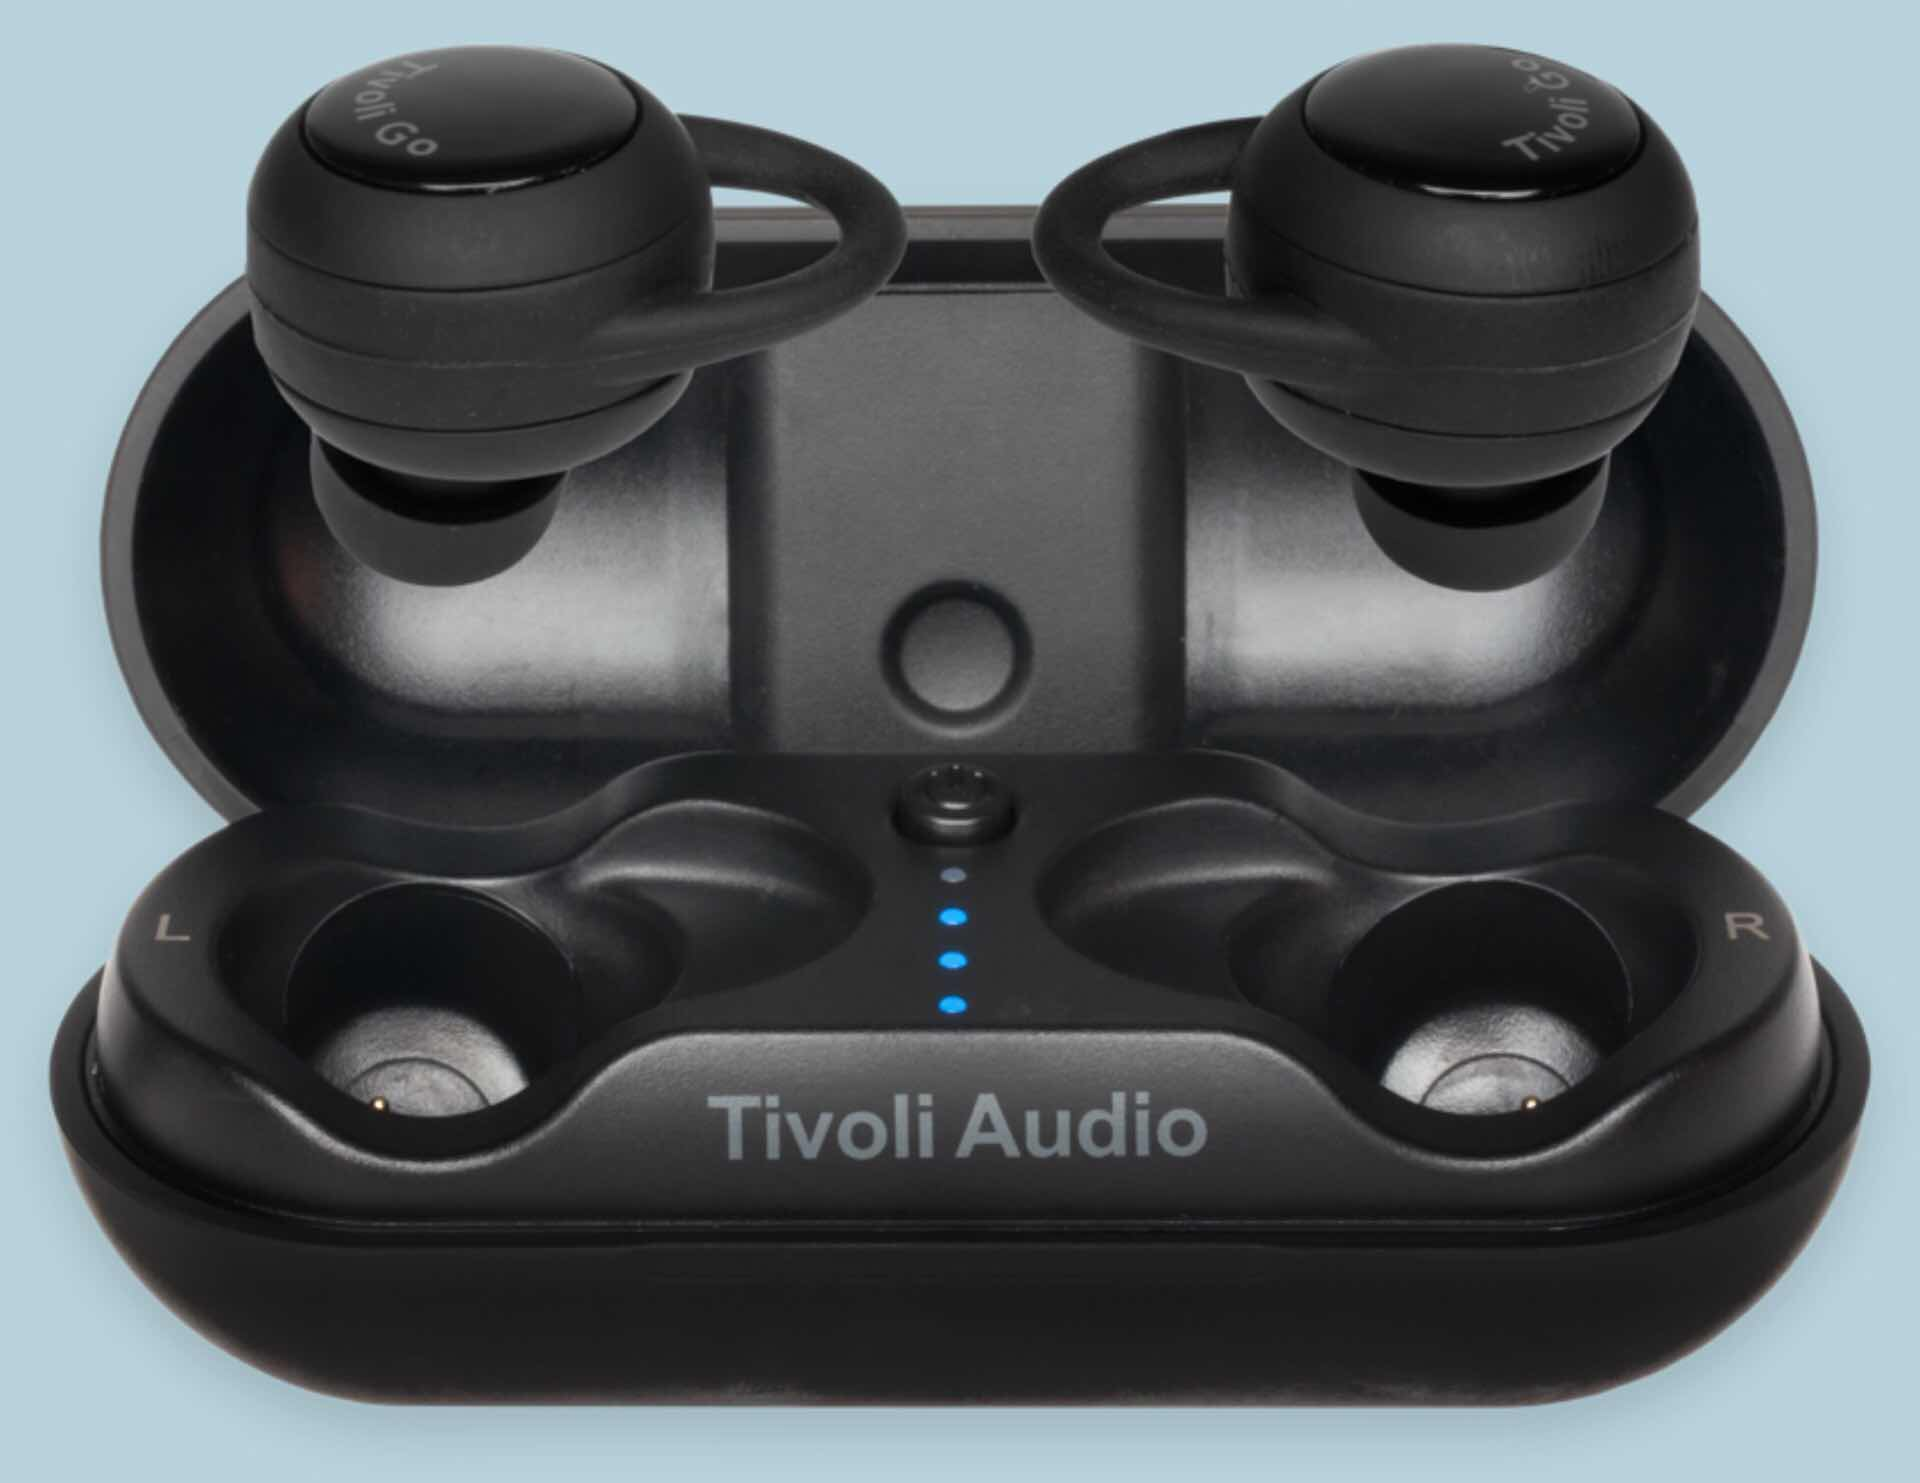 tivoli-audio-fonico-true-wireless-stereo-earbuds